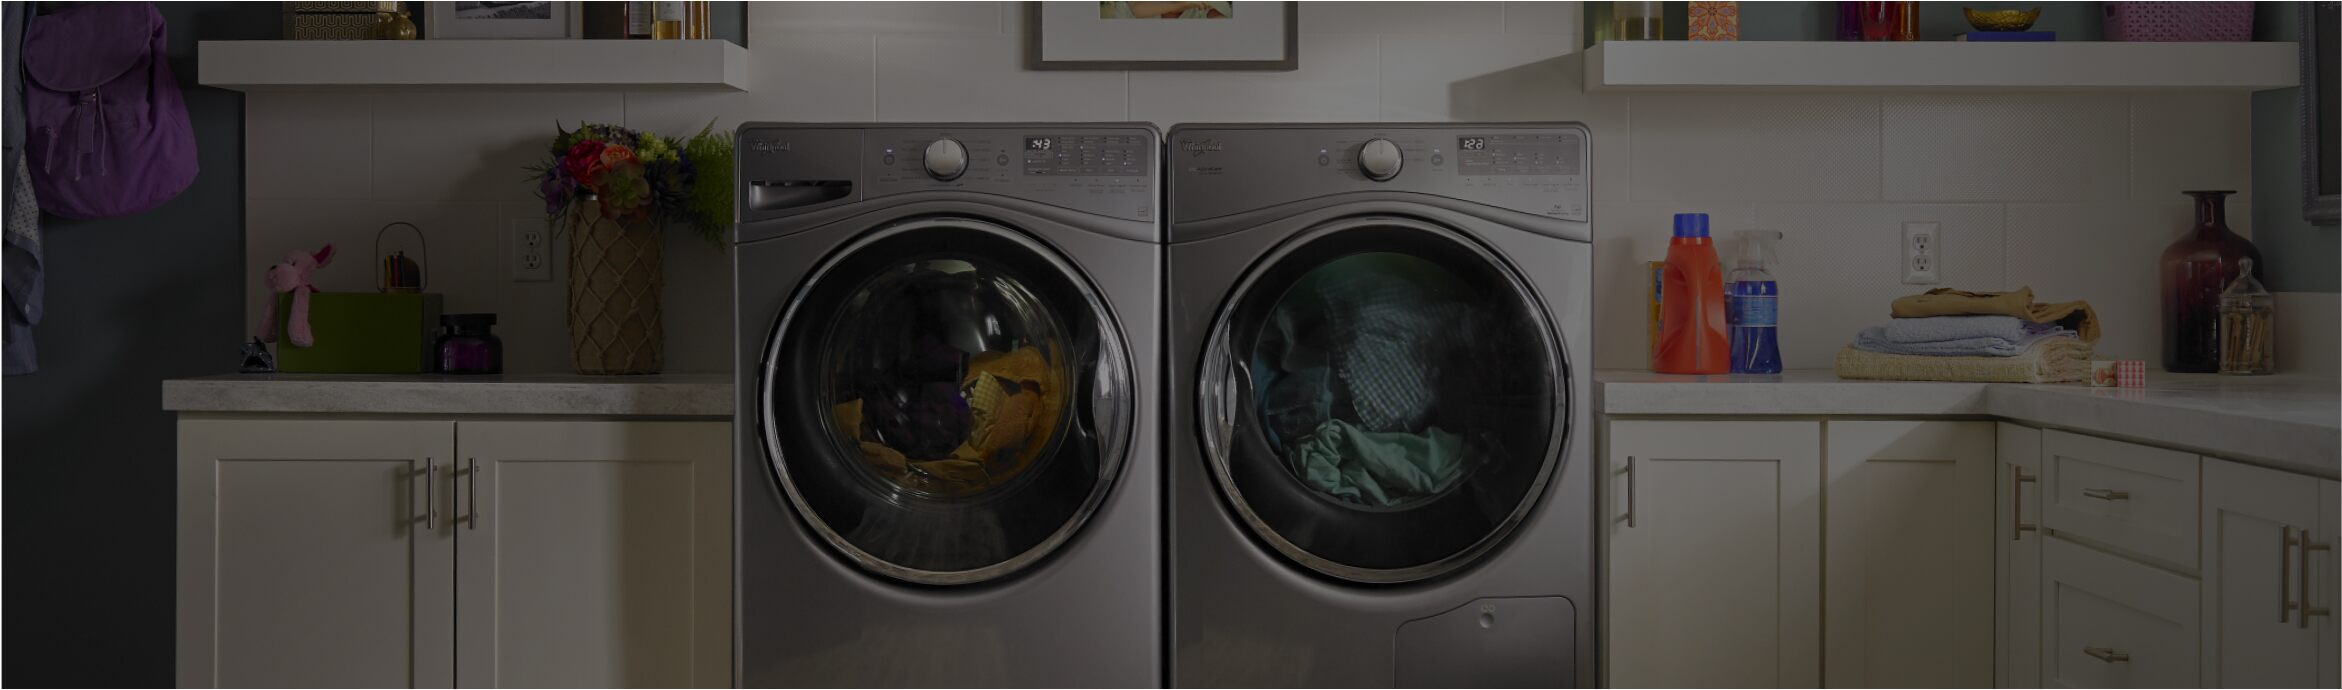 3 Steps To Find The Right Washer And Dryer Dimensions